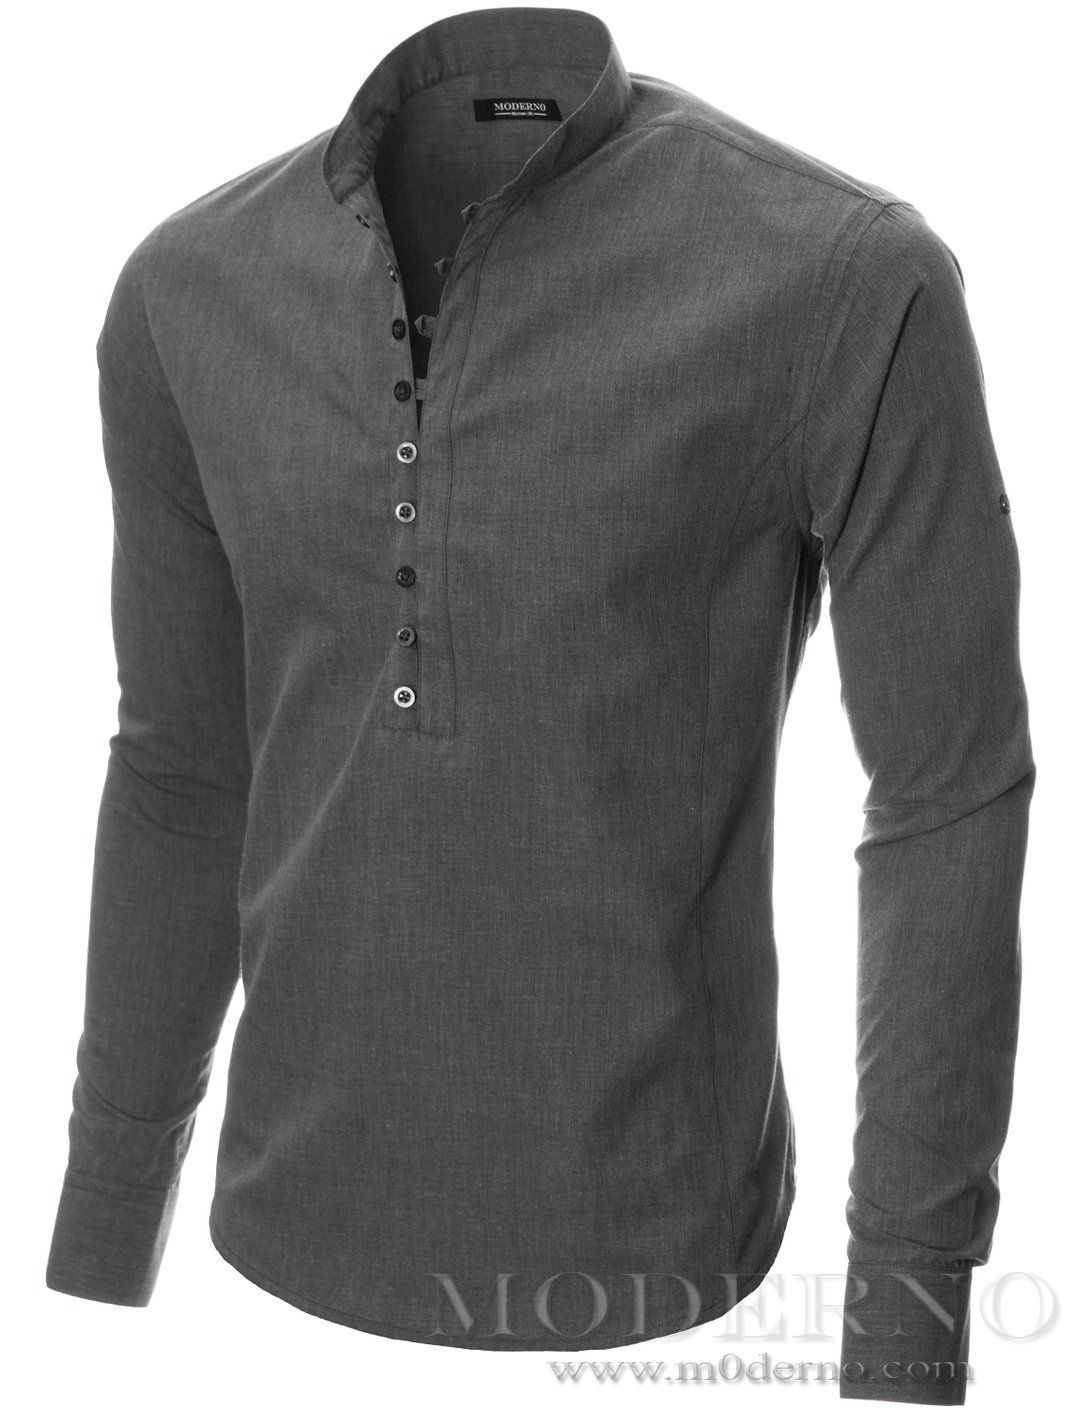 0e11efdf6569 See all 7 color variations of this mens slim fit mao collar dark gray casual  shirt. Get FREE shipping worldwide and 30 days return policy